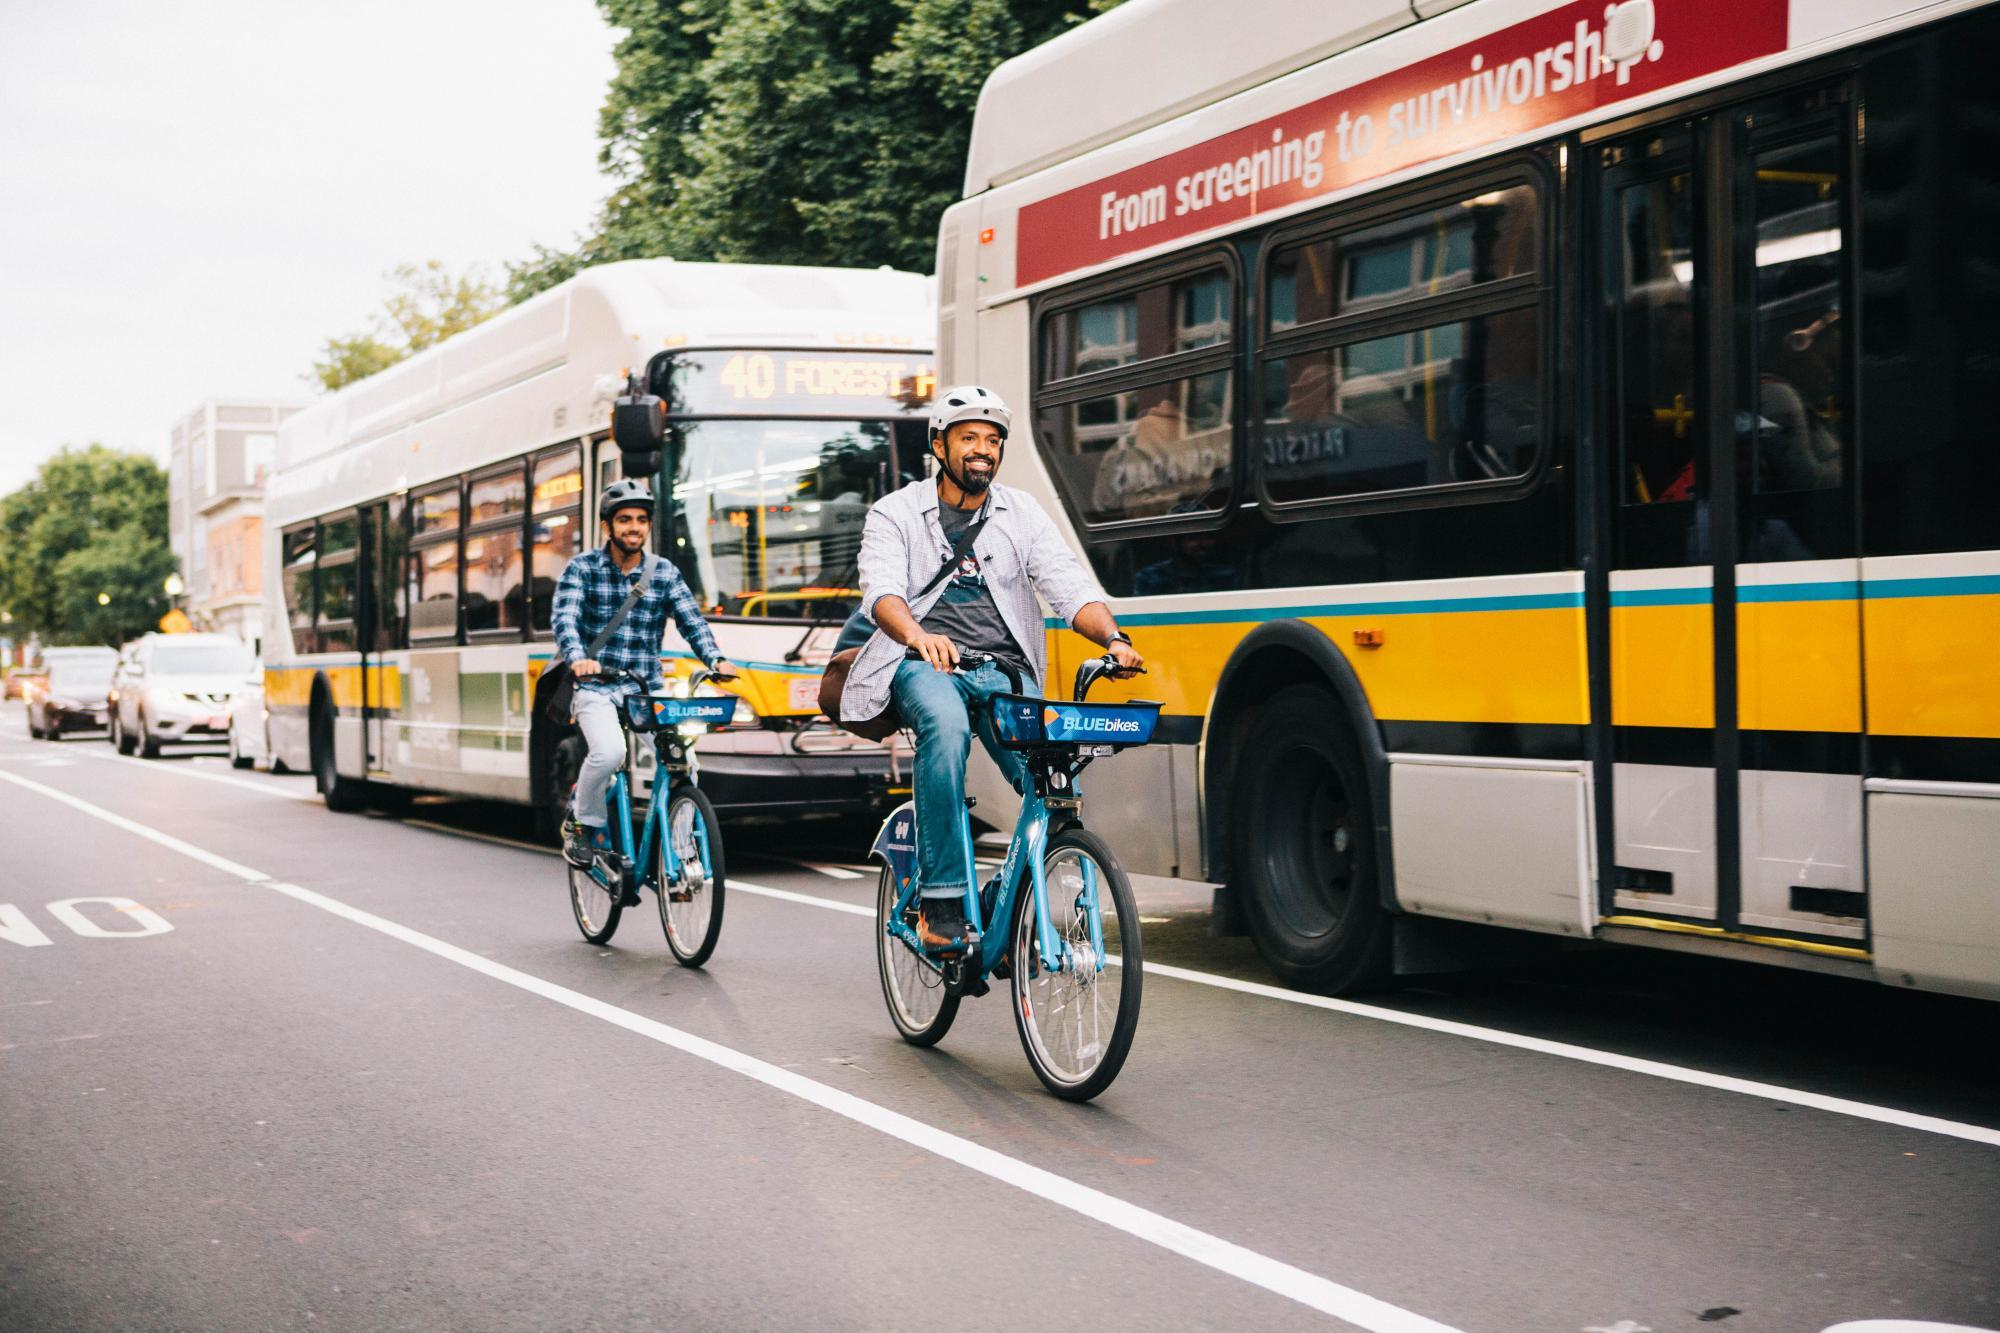 Two people ride Bluebikes in the bike lane, with 2 MBTA buses passing by them in the traffic lane. Photo courtesy of Bluebikes.